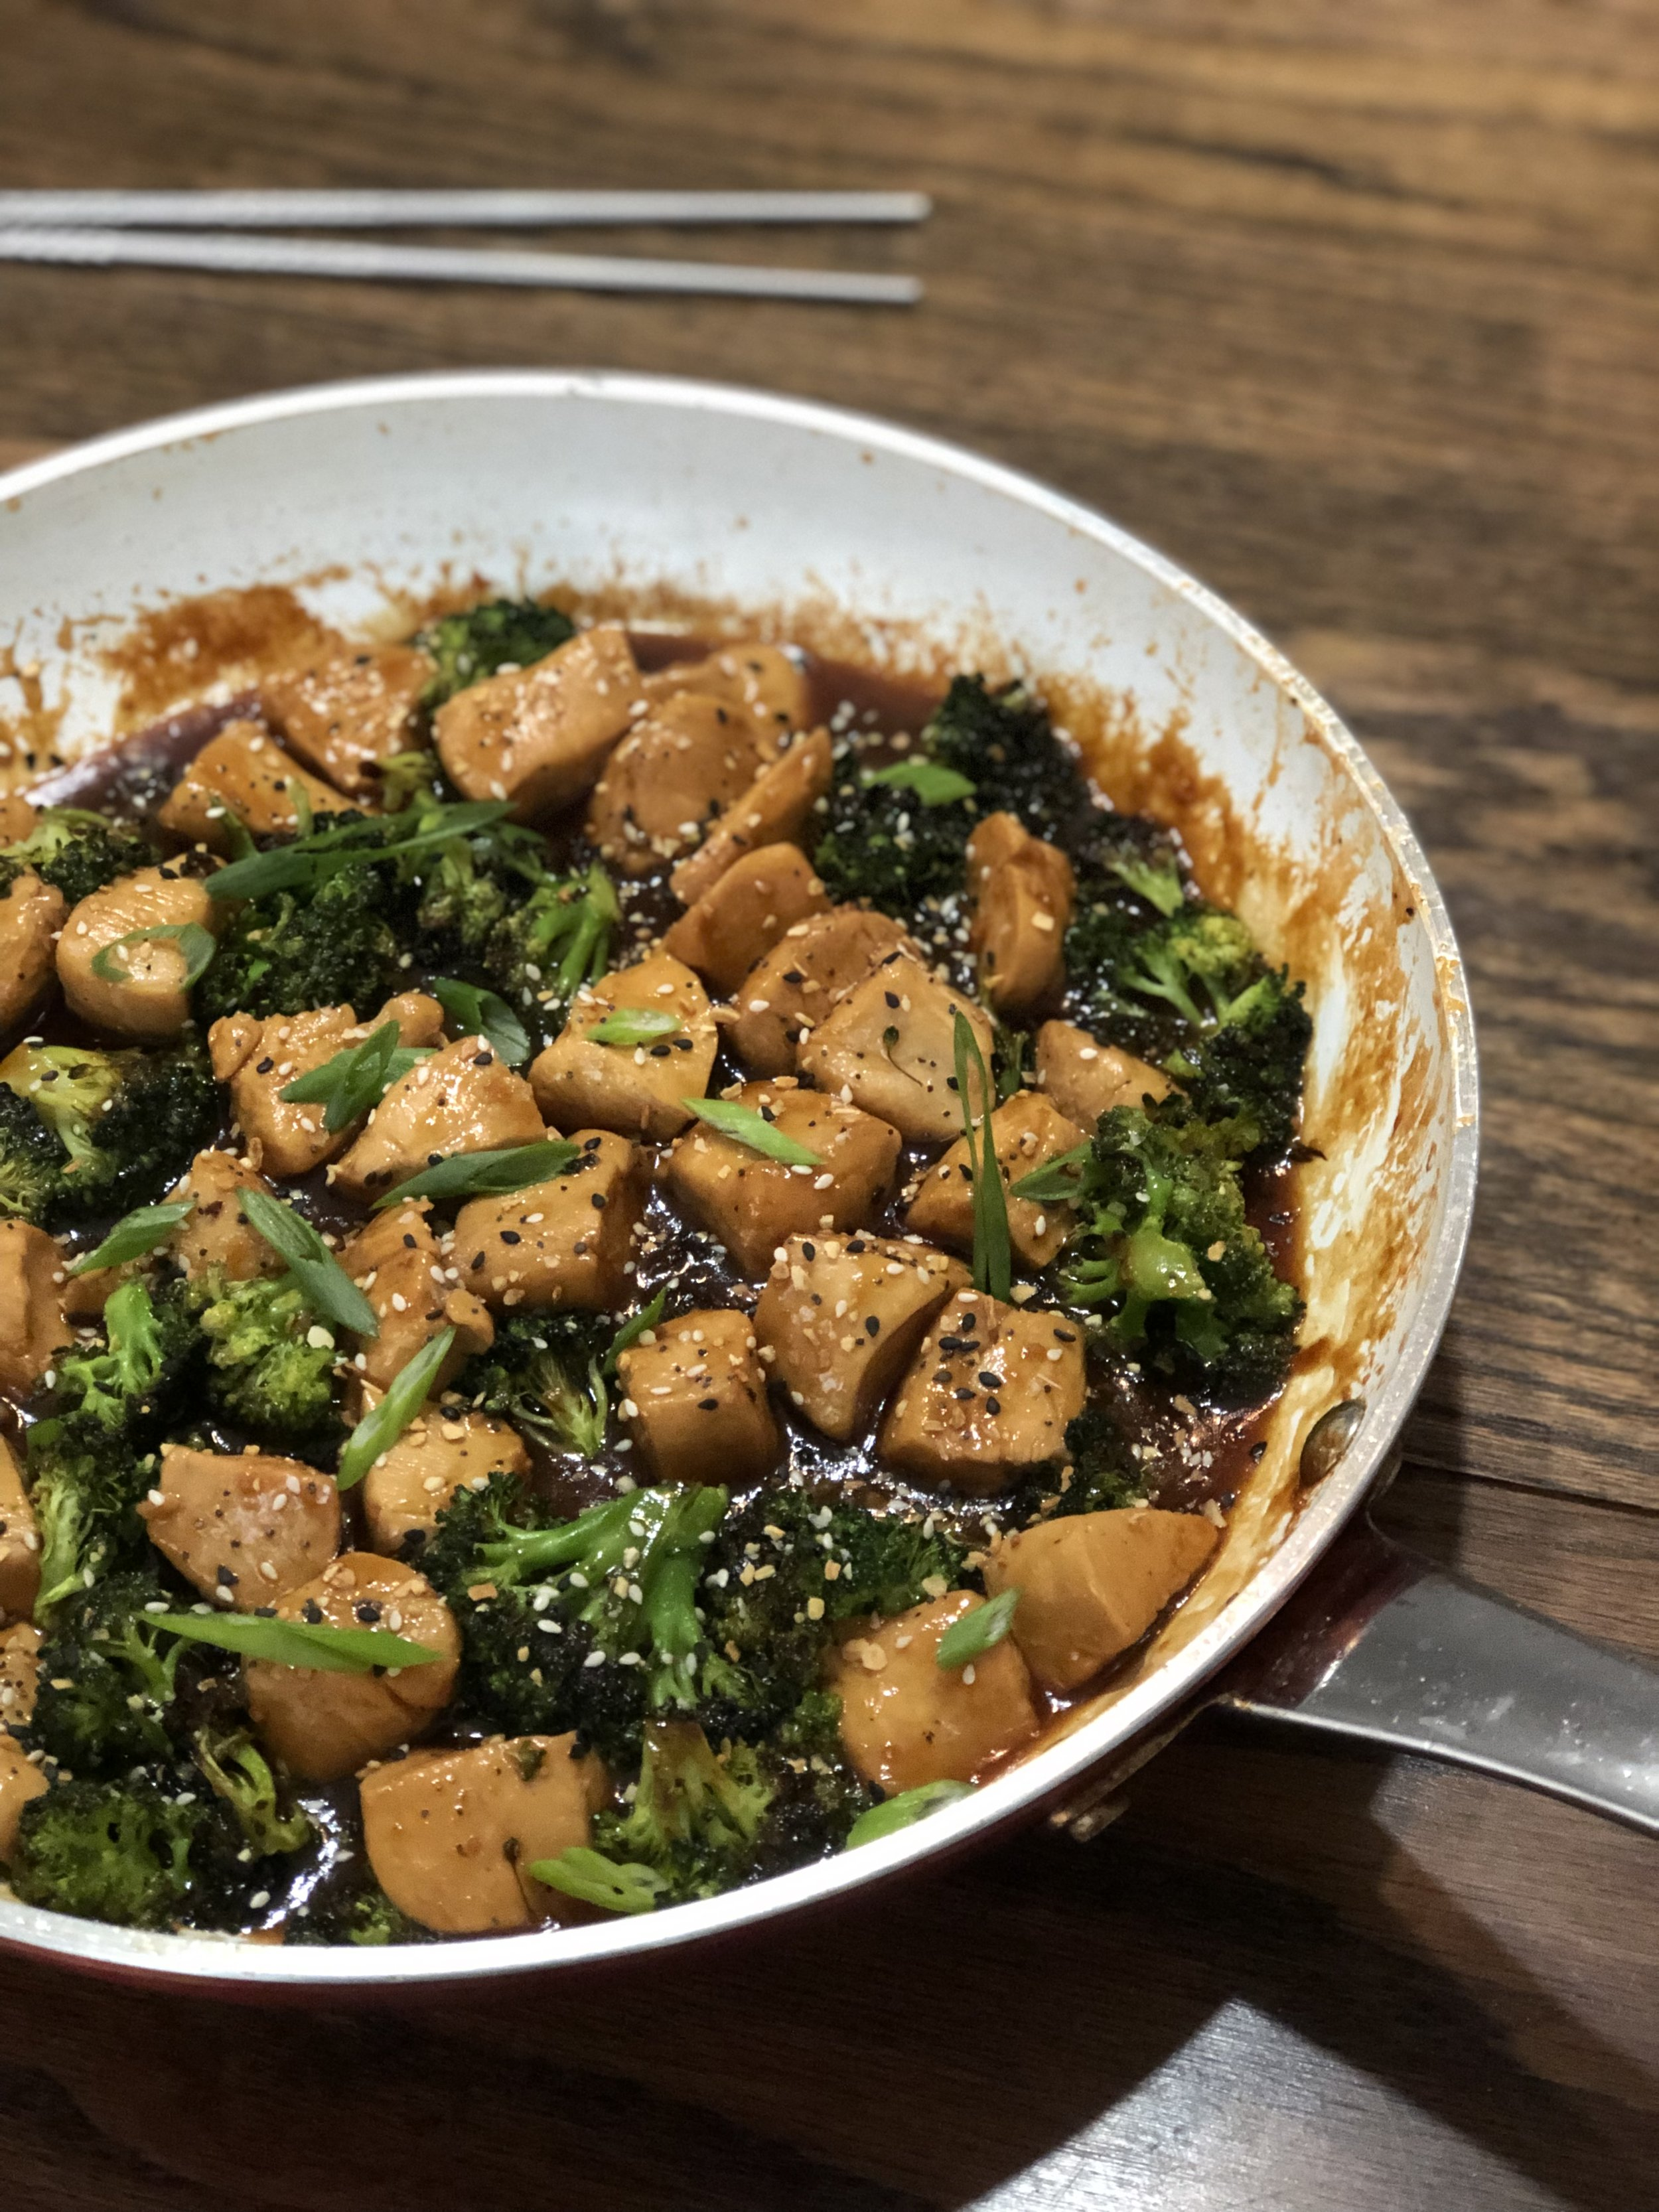 scratch-made chicken teriyaki and broccoli -